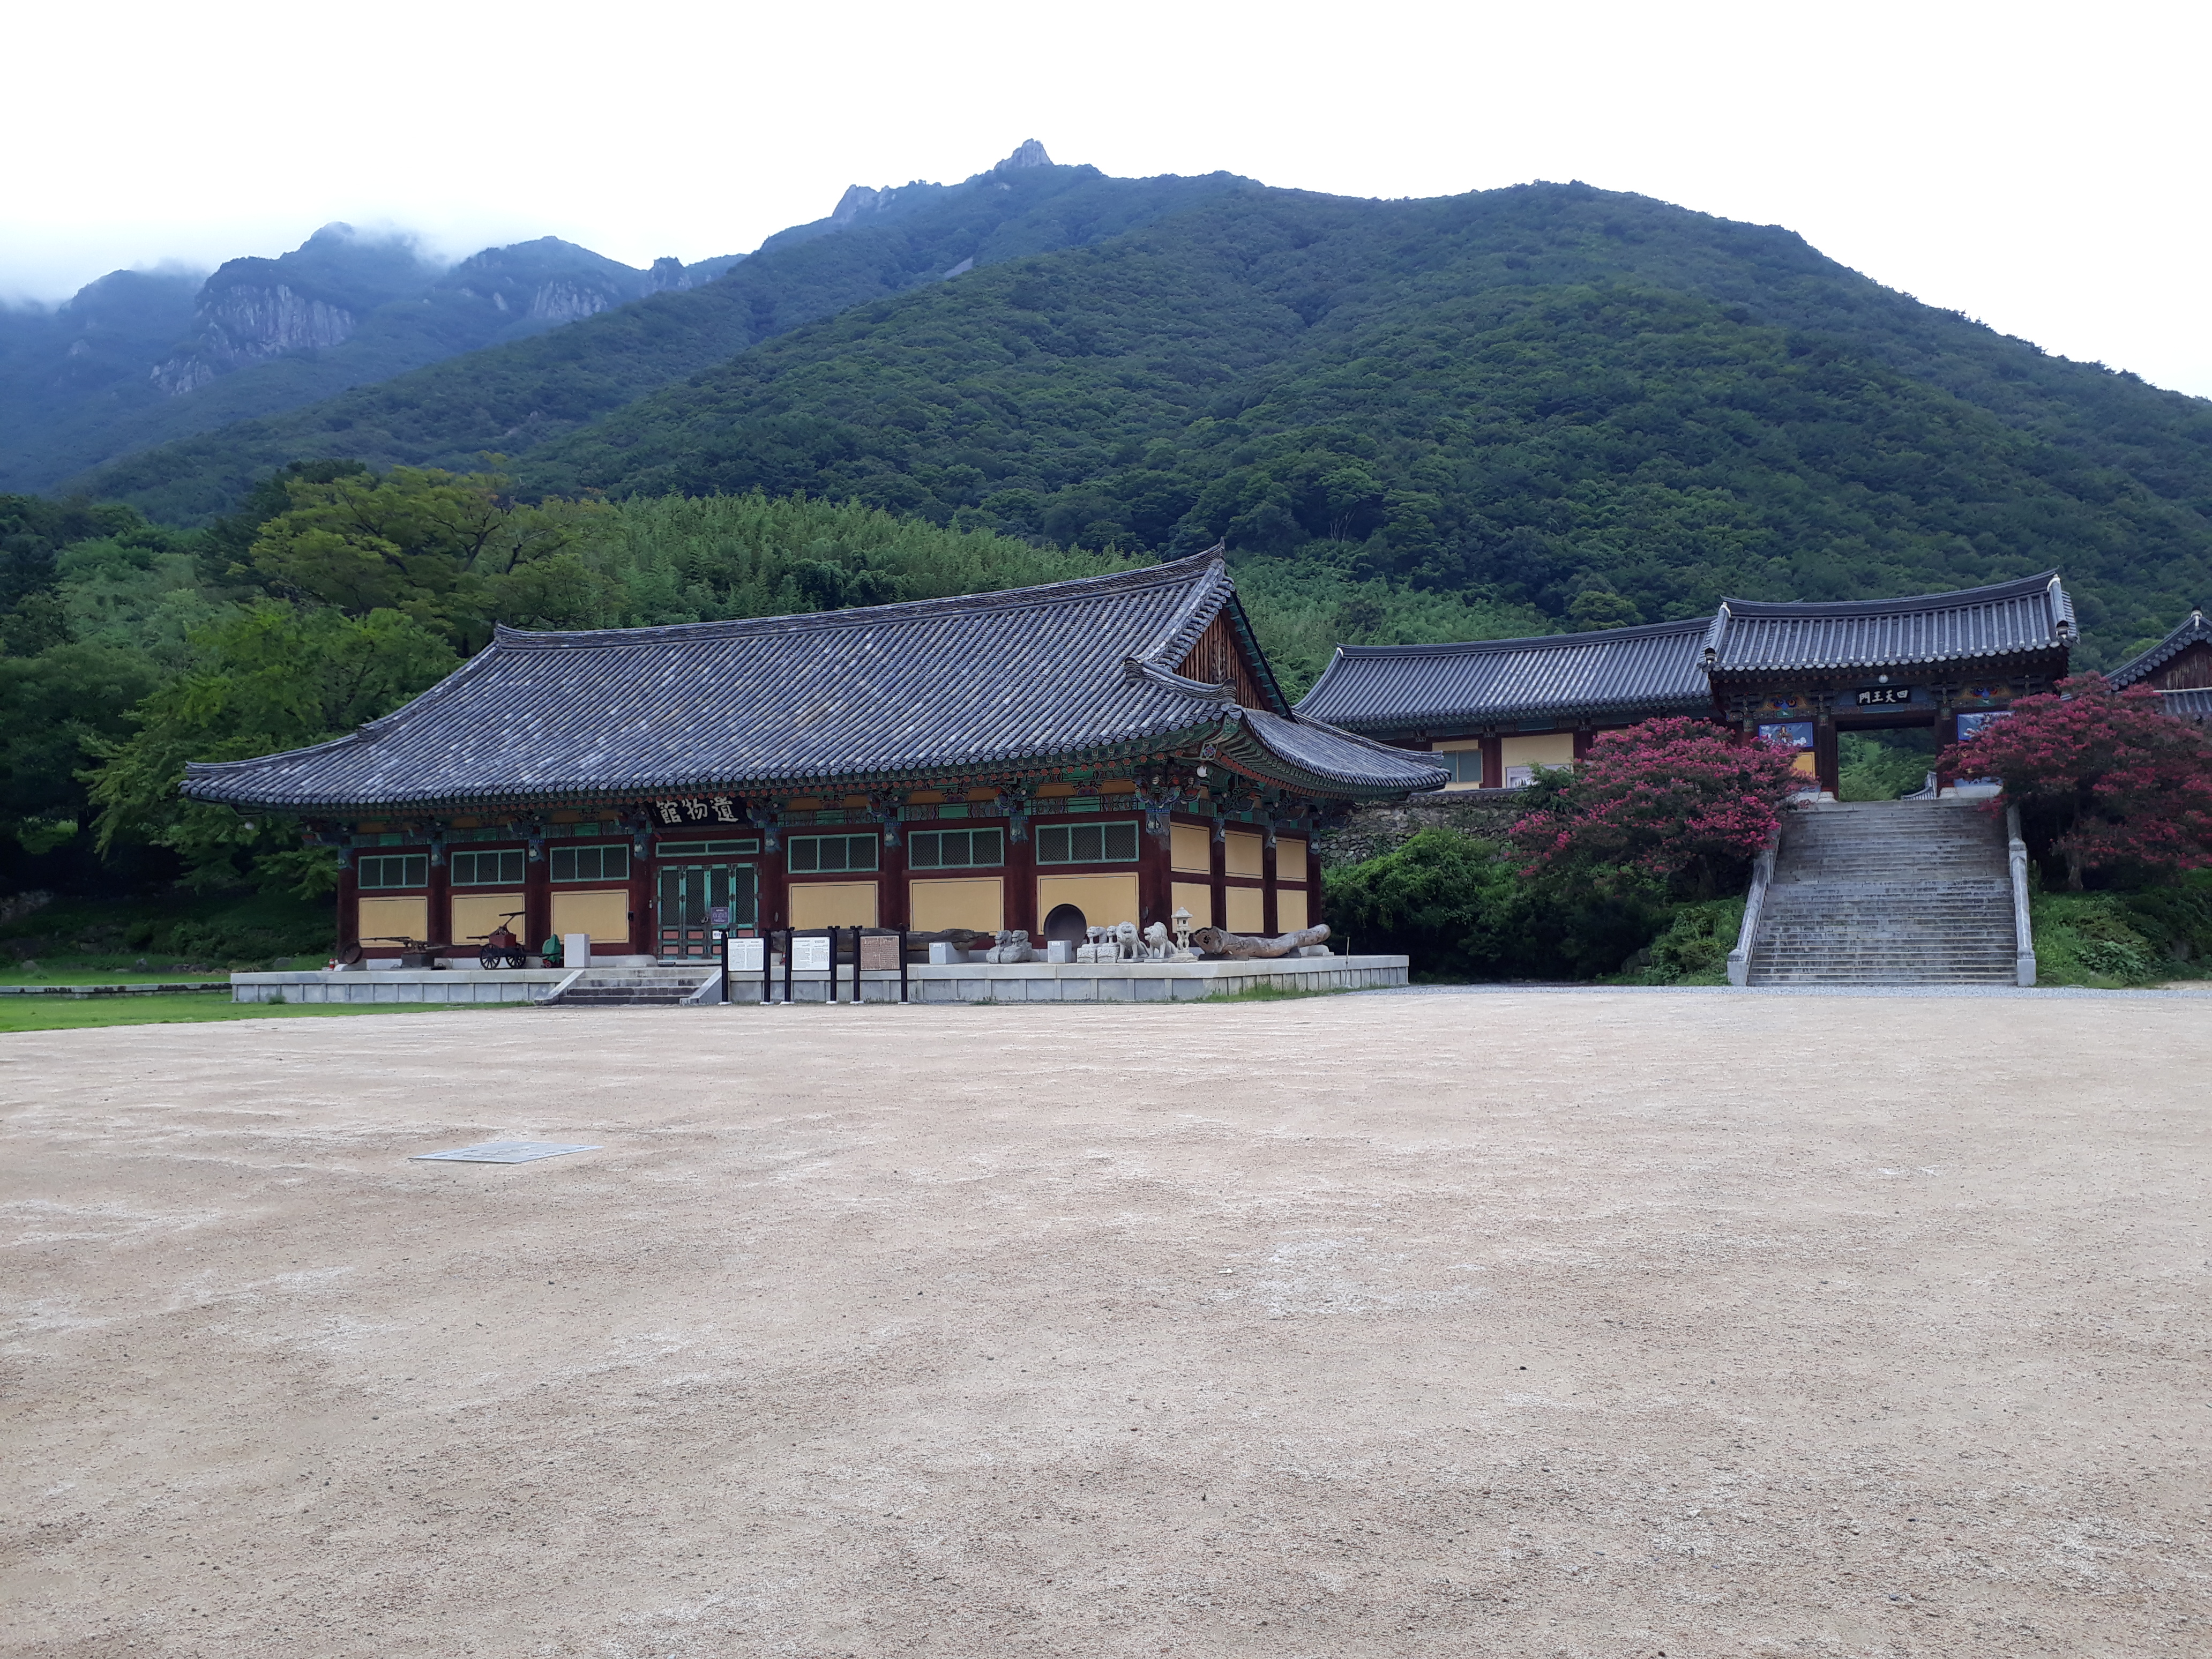 Free download high resolution image - free image free photo free stock image public domain picture -Pyochungsa Korean Buddhist temple in Miryang